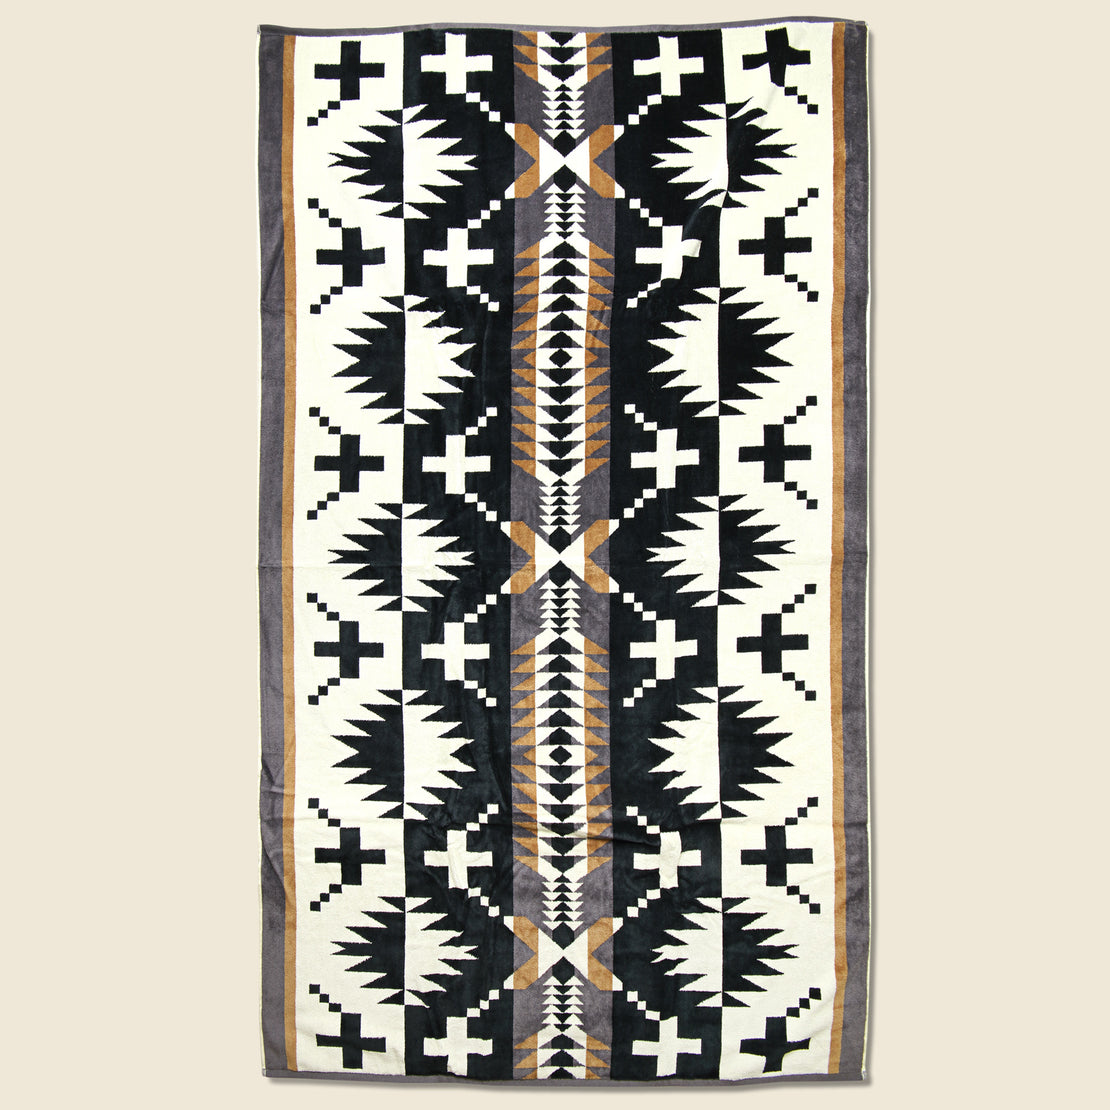 Pendleton Spider Rock Towel - Black/White